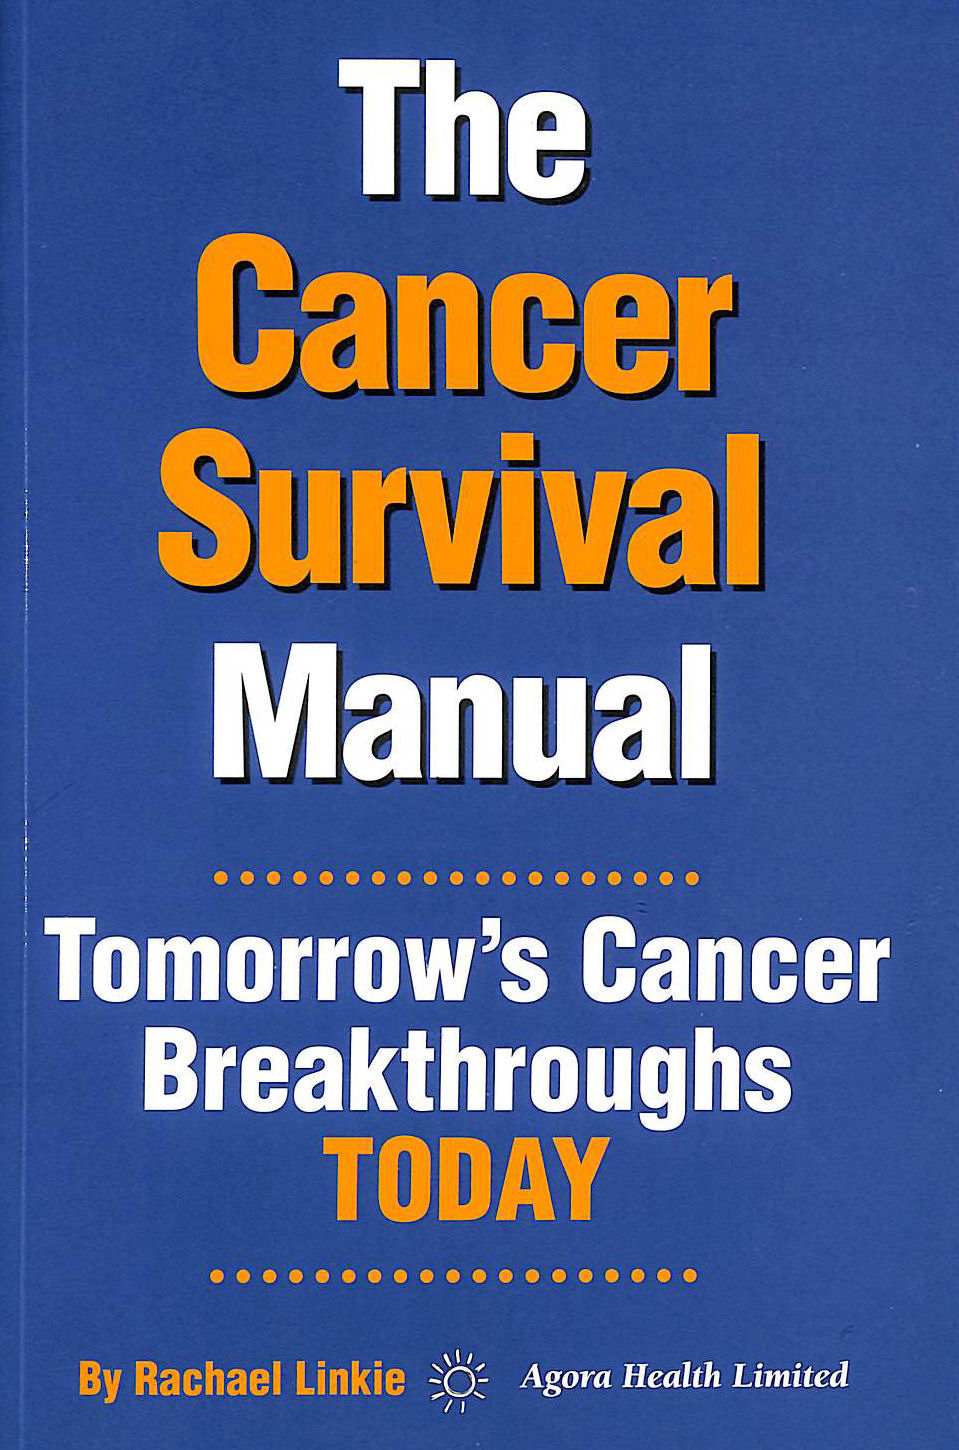 Image for The Cancer Survival Manual By Rachael Linkie - Tomorrowâ??S Cancer Breakthroughs Today [Paperback]